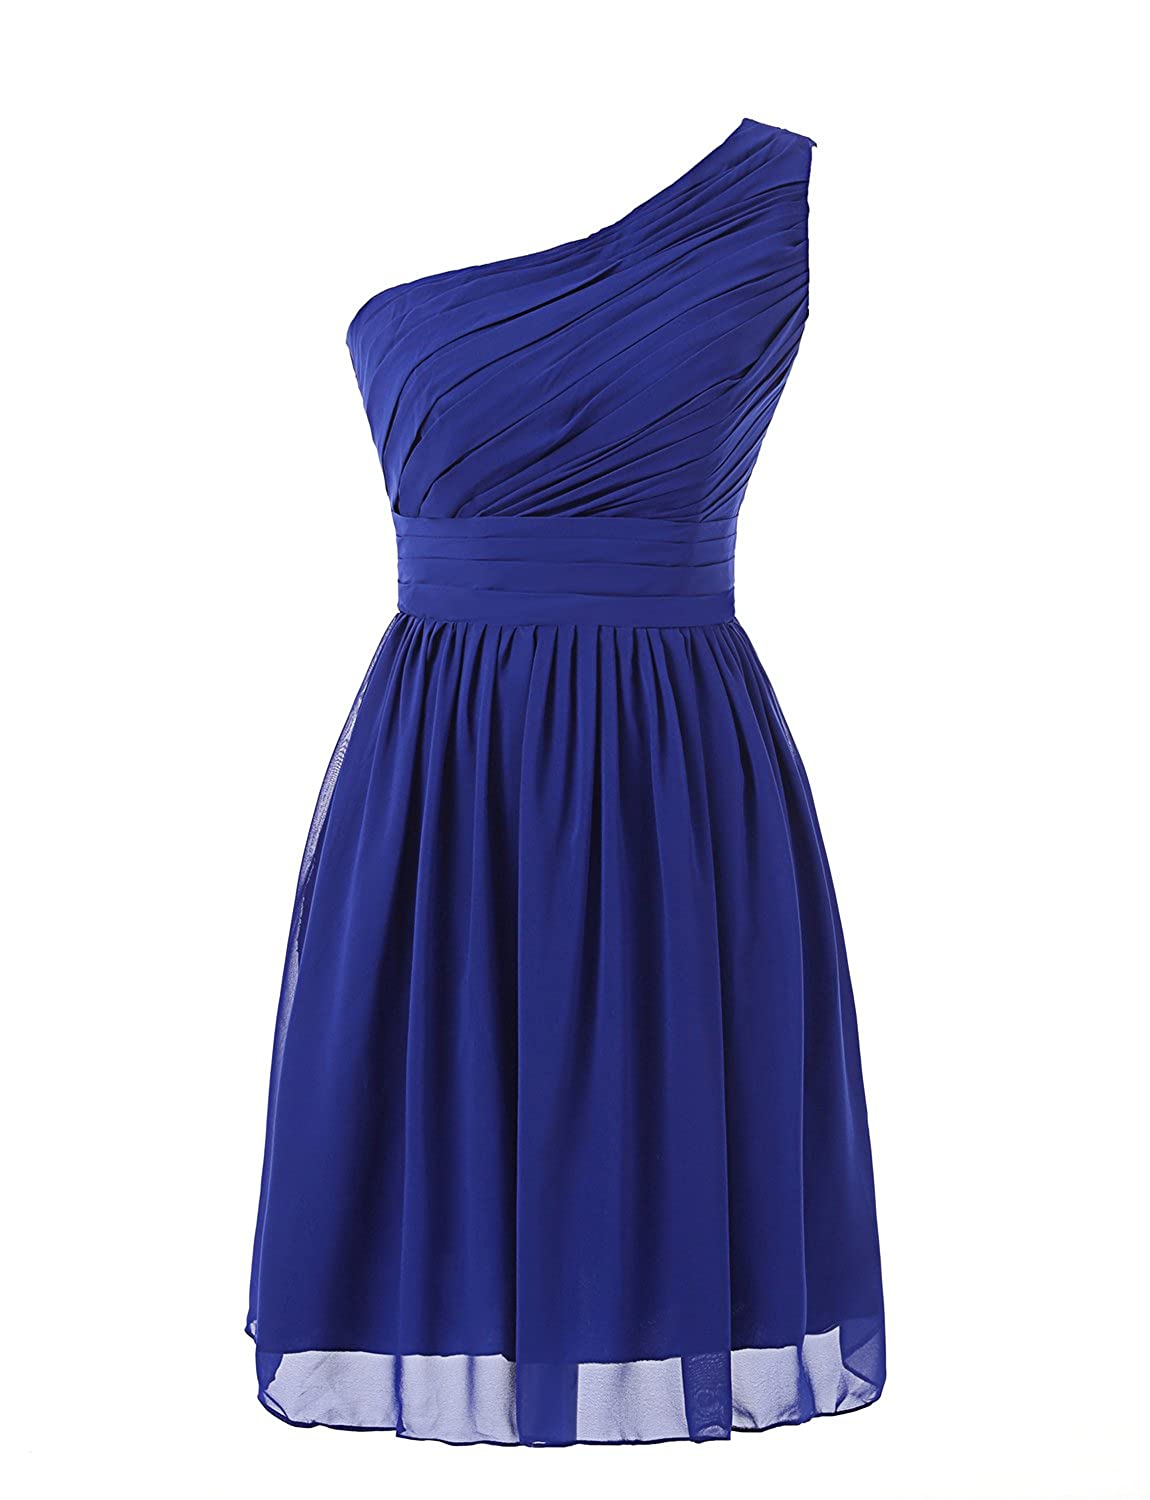 e514acaf576 Top4  Kiss Dress Women s Short Bridesmaid Dresses One Shoulder Chiffon Prom  Gowns. Wholesale Price 39.90 -  45.90 ○Fabric Comfort Soft Chiffon